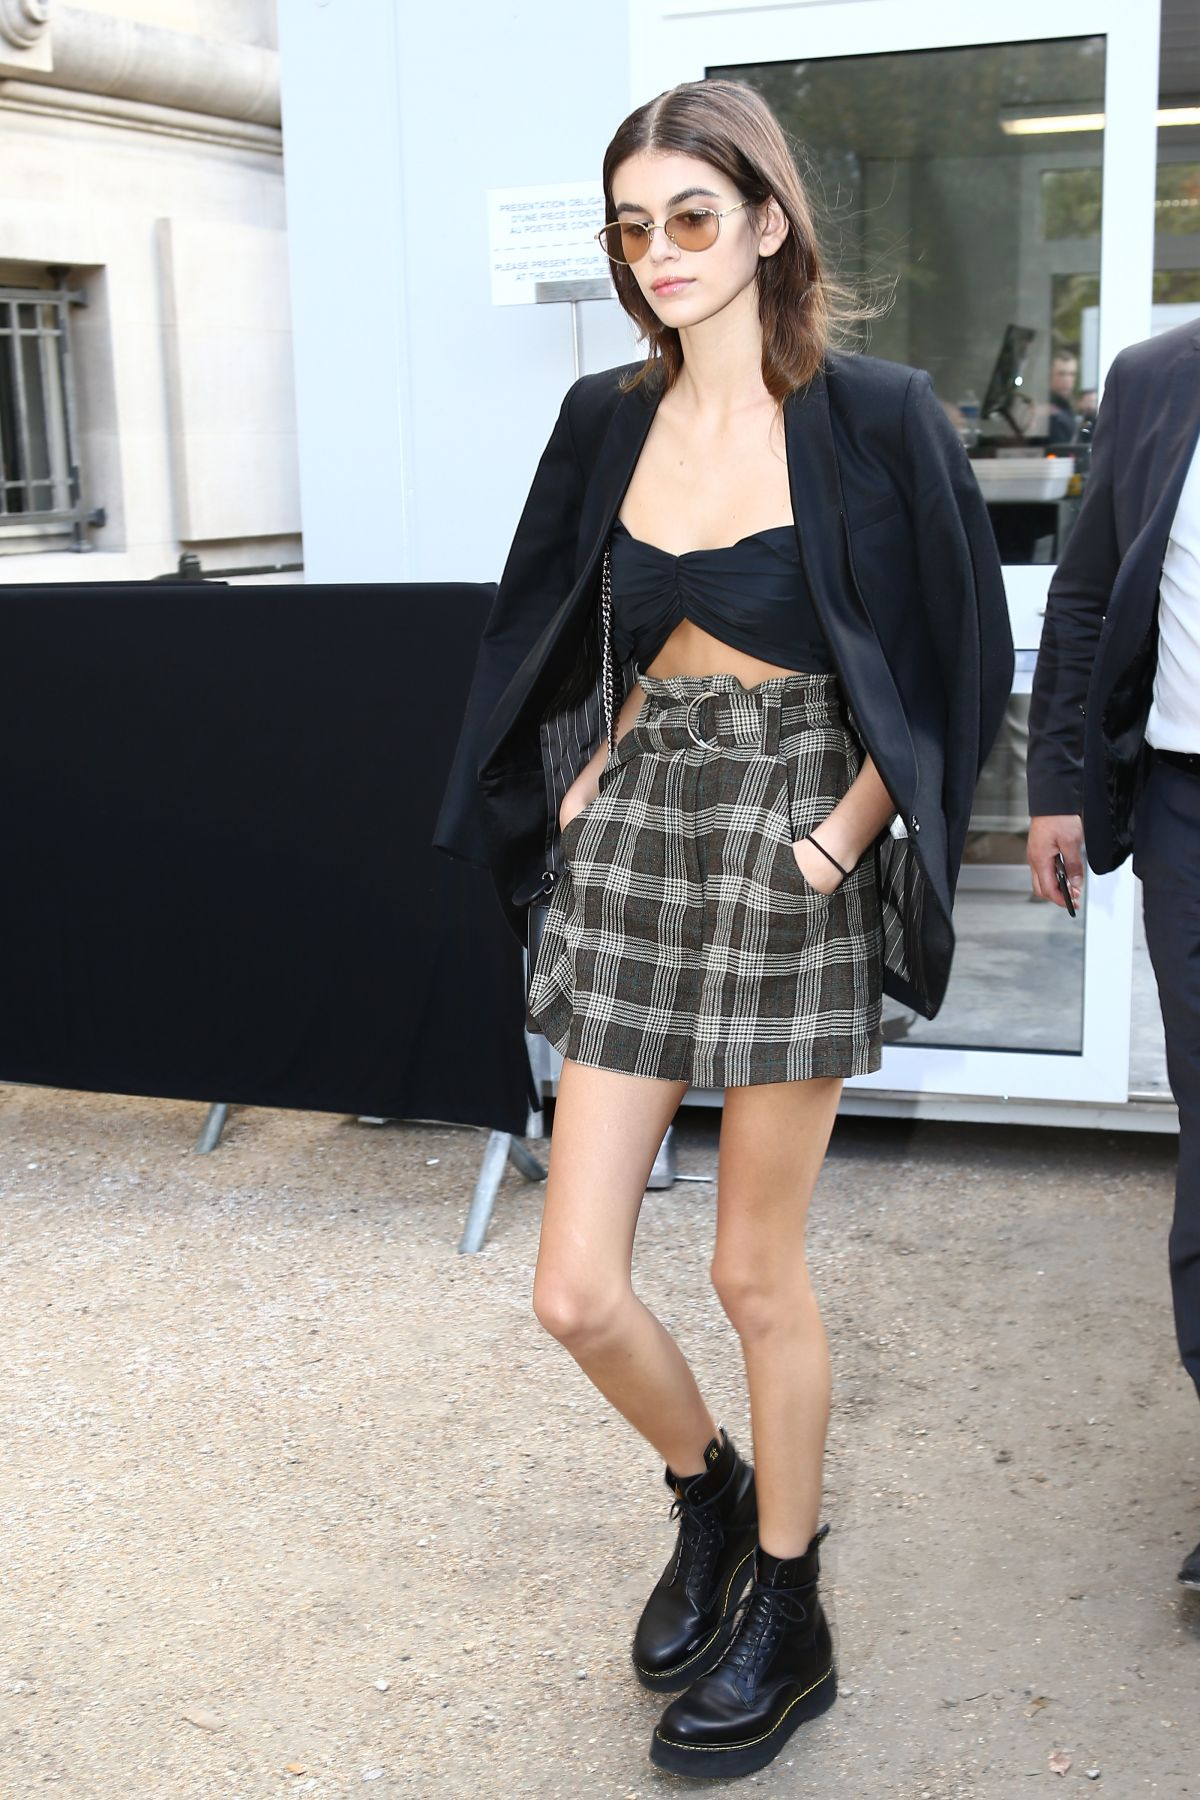 ca0890fa38 KAIA GERBER Out and About in Paris 10 03 2017 - HawtCelebs